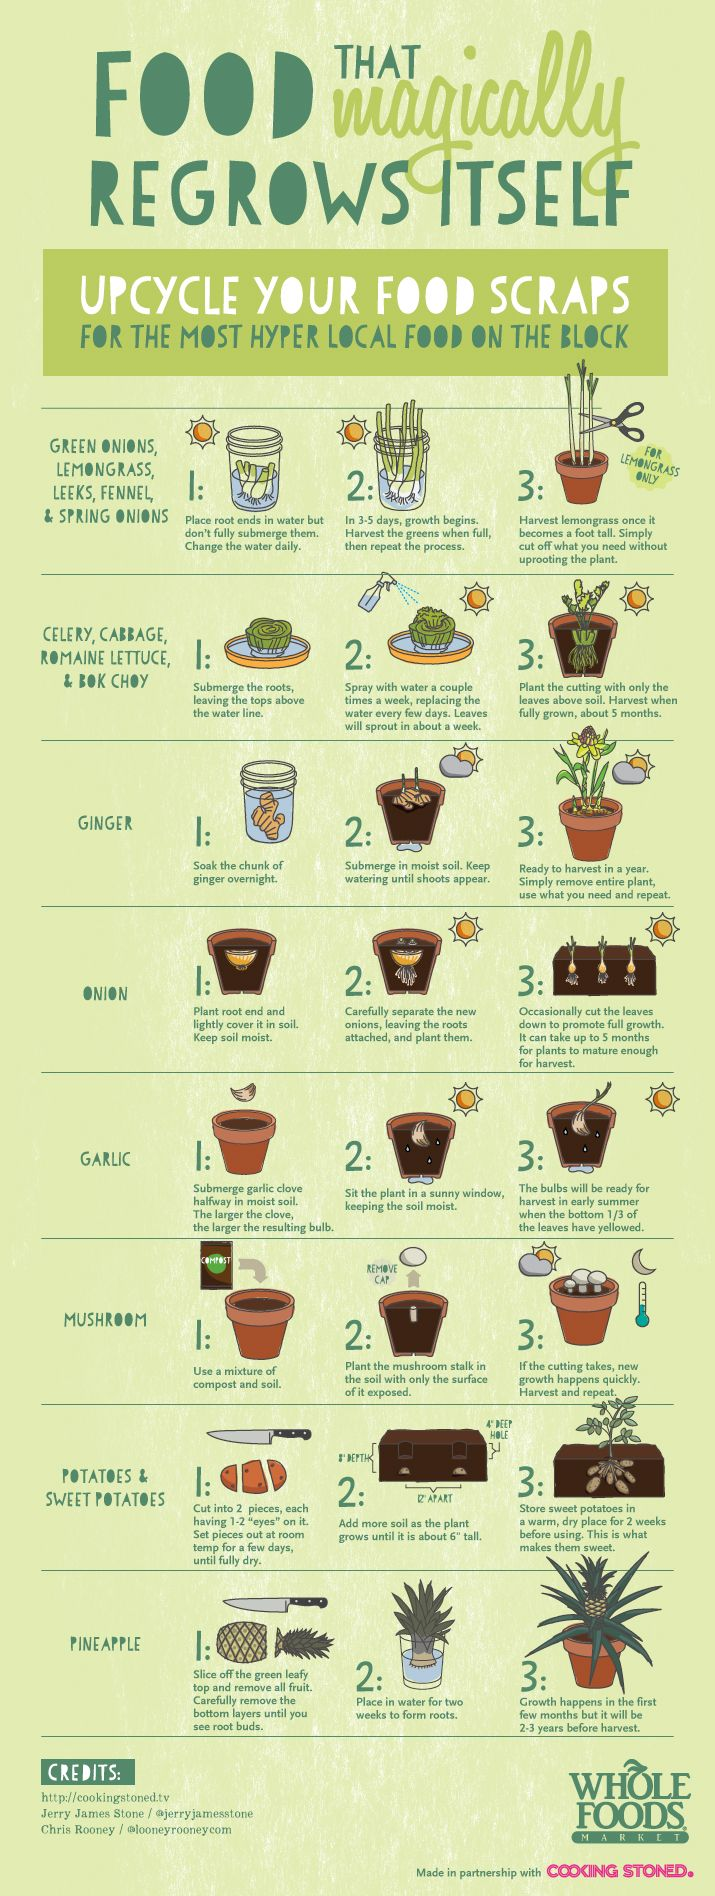 Come riciclere alcuni scarti di cibo Be sure to upcycle your food scraps... All of this food will magically regrow itself!